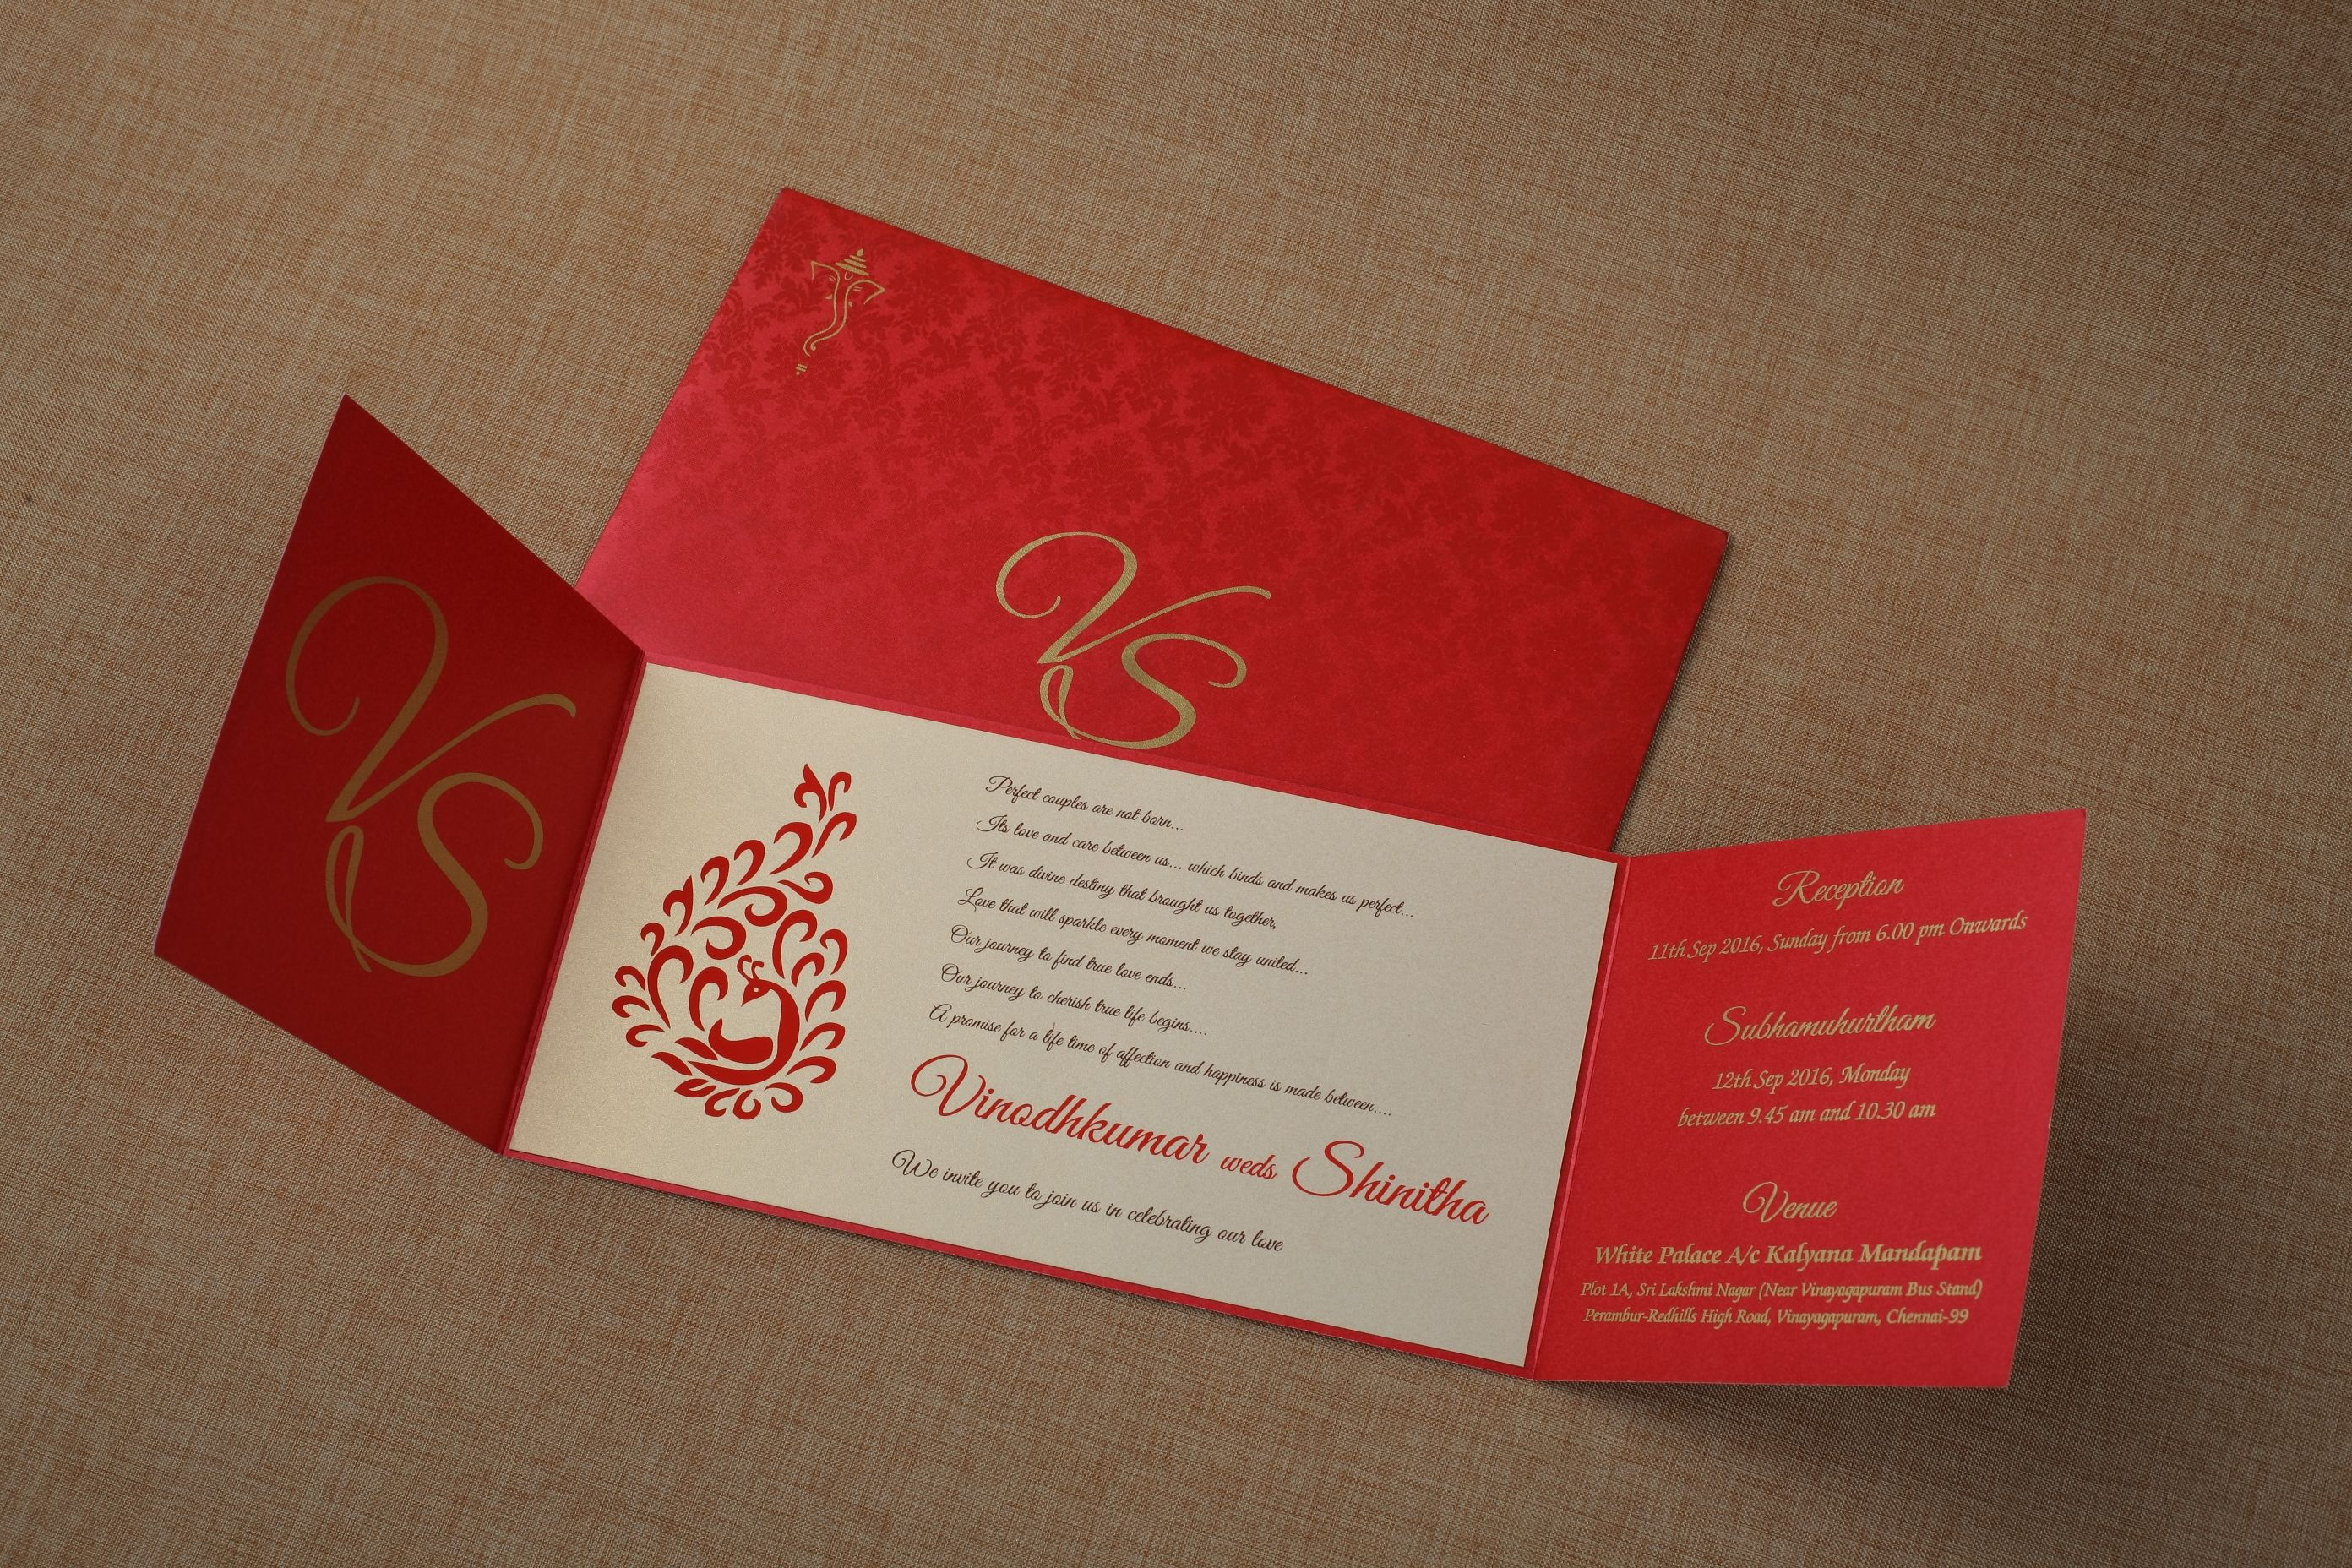 South Indian Traditional Wedding Card Which Conveys Modern And Traditional In A Classic Way Design Wedding Invitations Hindu Wedding Cards Marriage Invitations